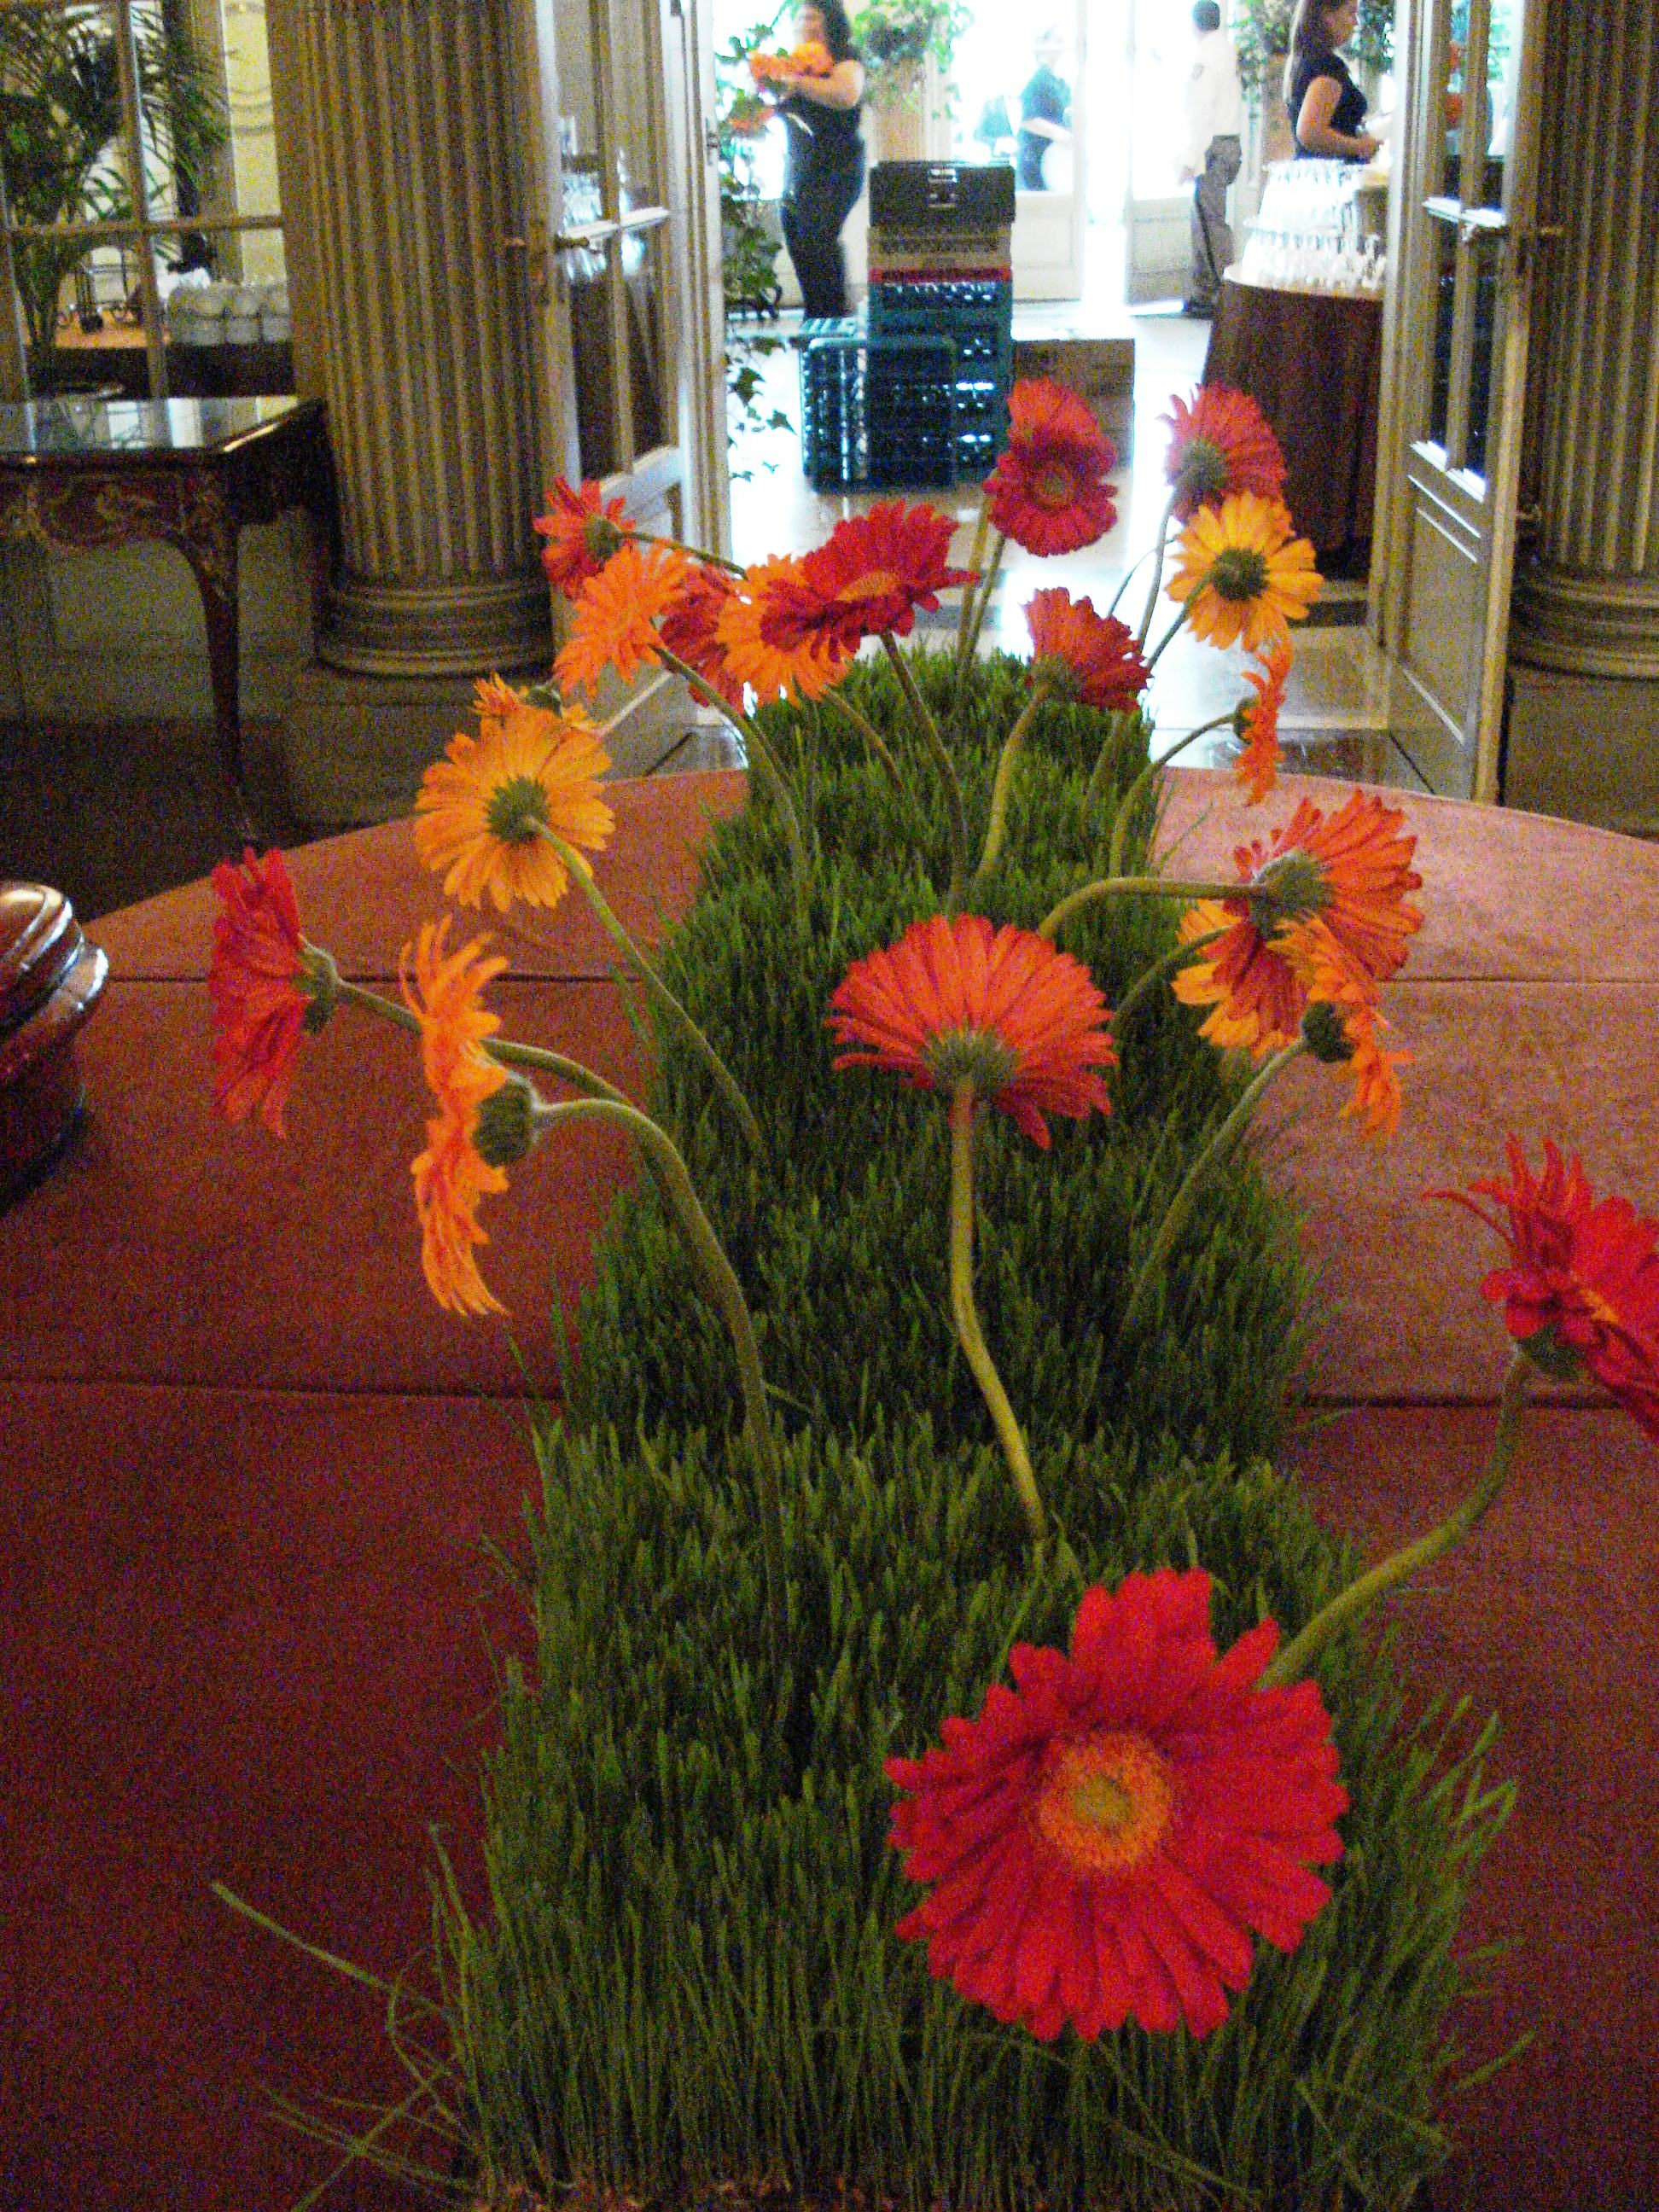 Gerbera daisies in wheatgrass floral centerpiece